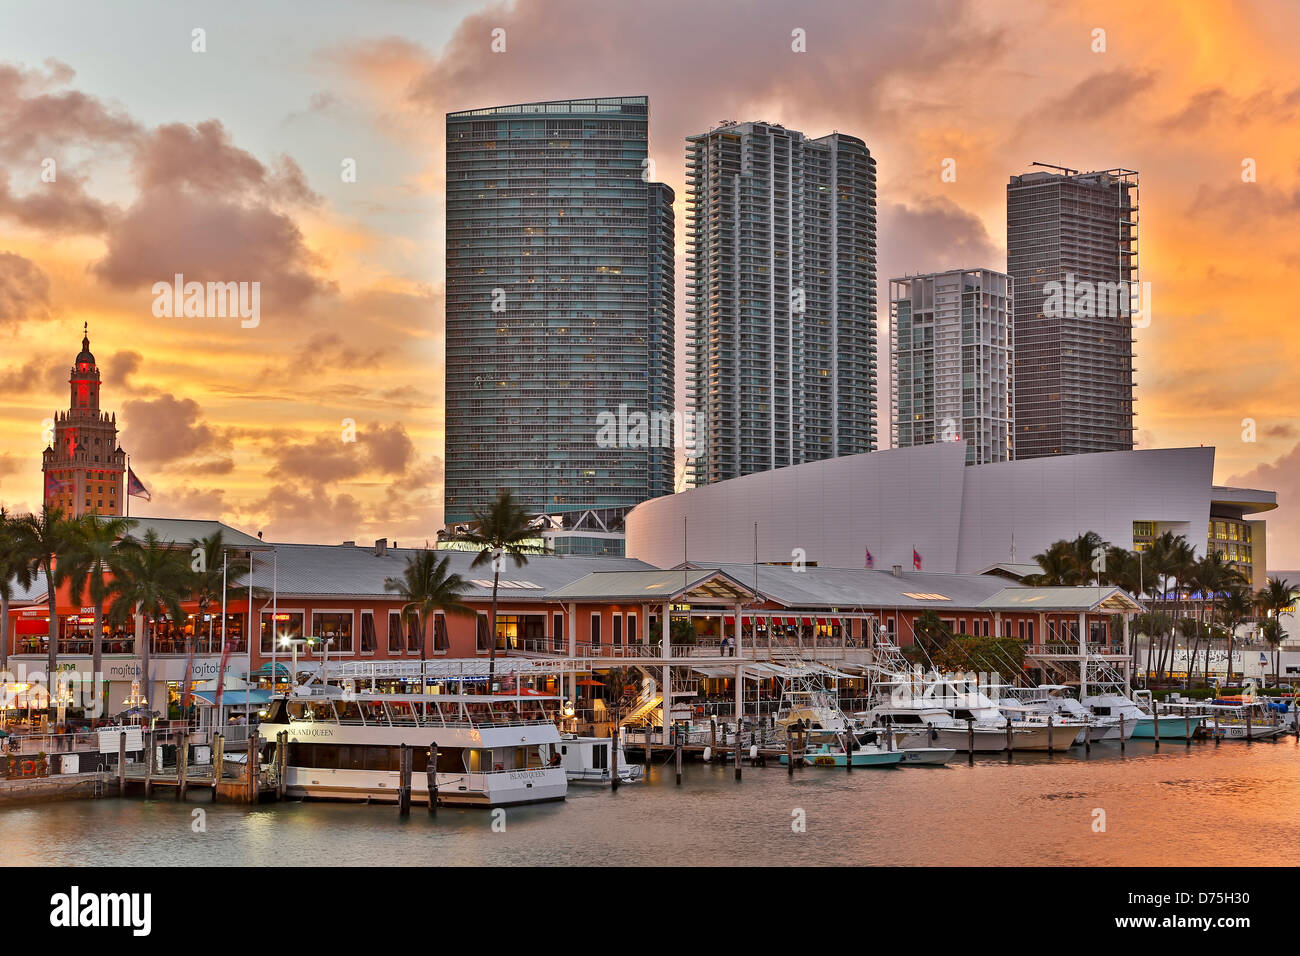 Marina at Bayfront Marketplace and skyscrapers, Miami, Florida USA - Stock Image